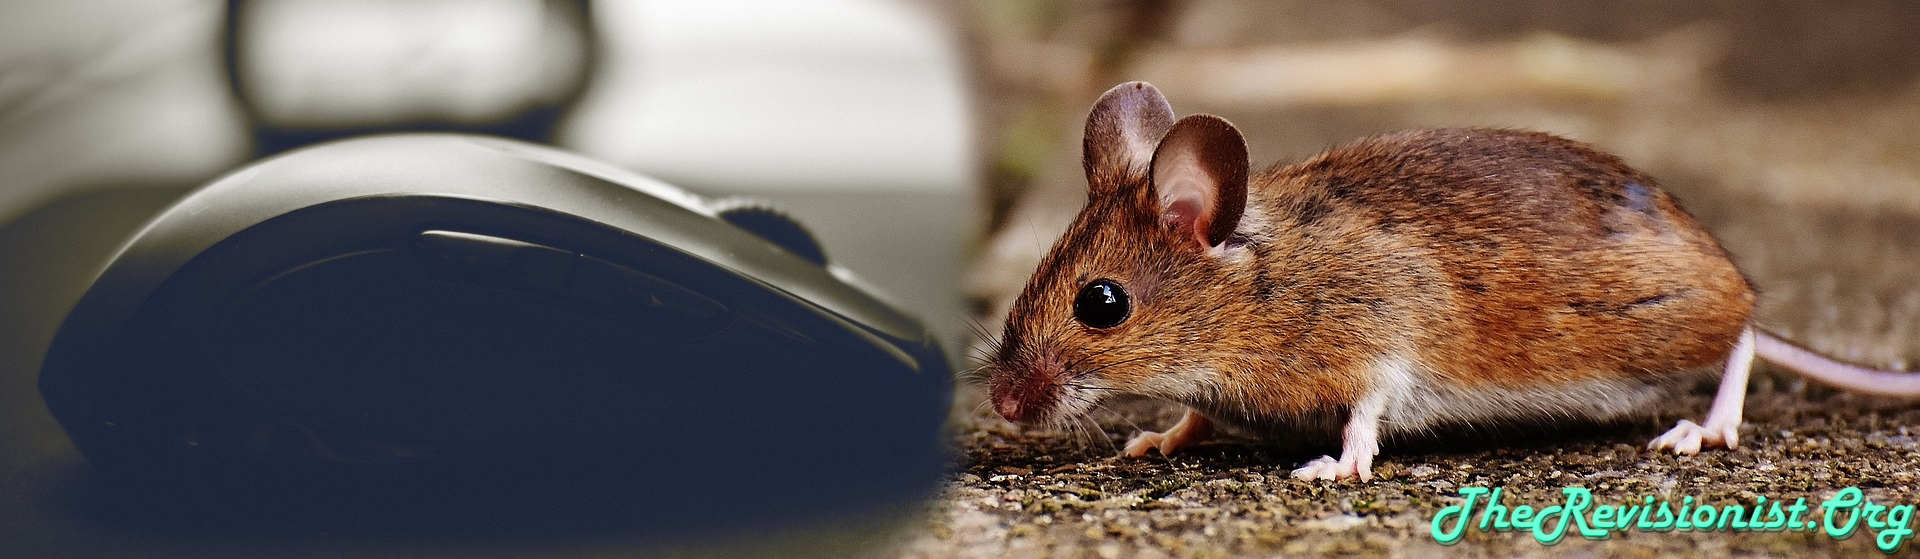 Best Mouses for Carpal Tunnel, Arthritis, Tendonitis, RSI